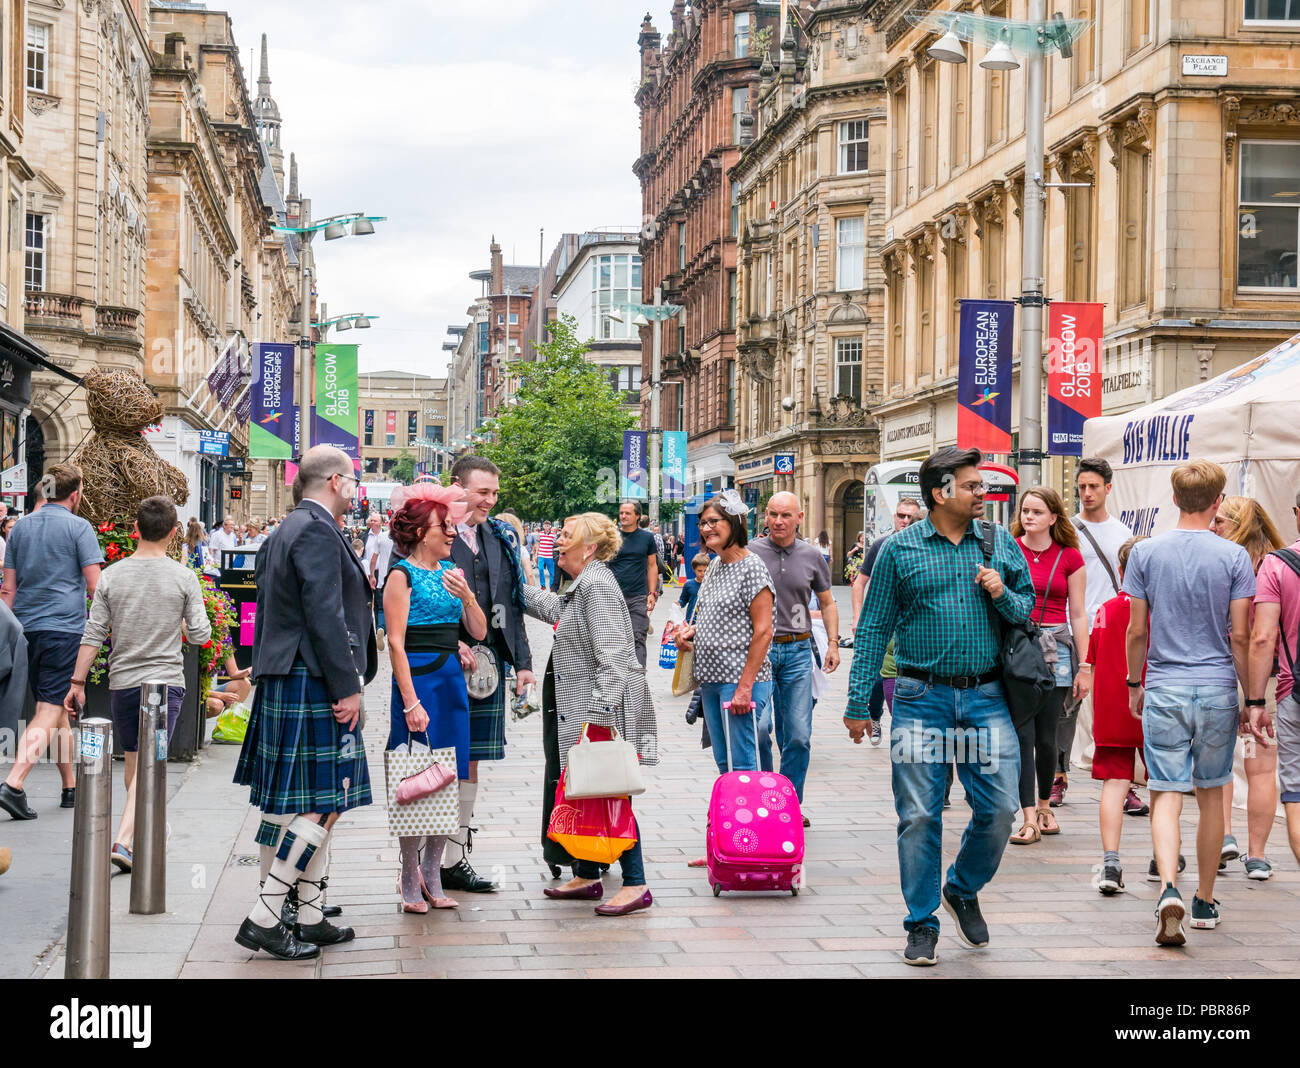 People Dressed For A Wedding With Men In Kilts Stopping To Say Hello